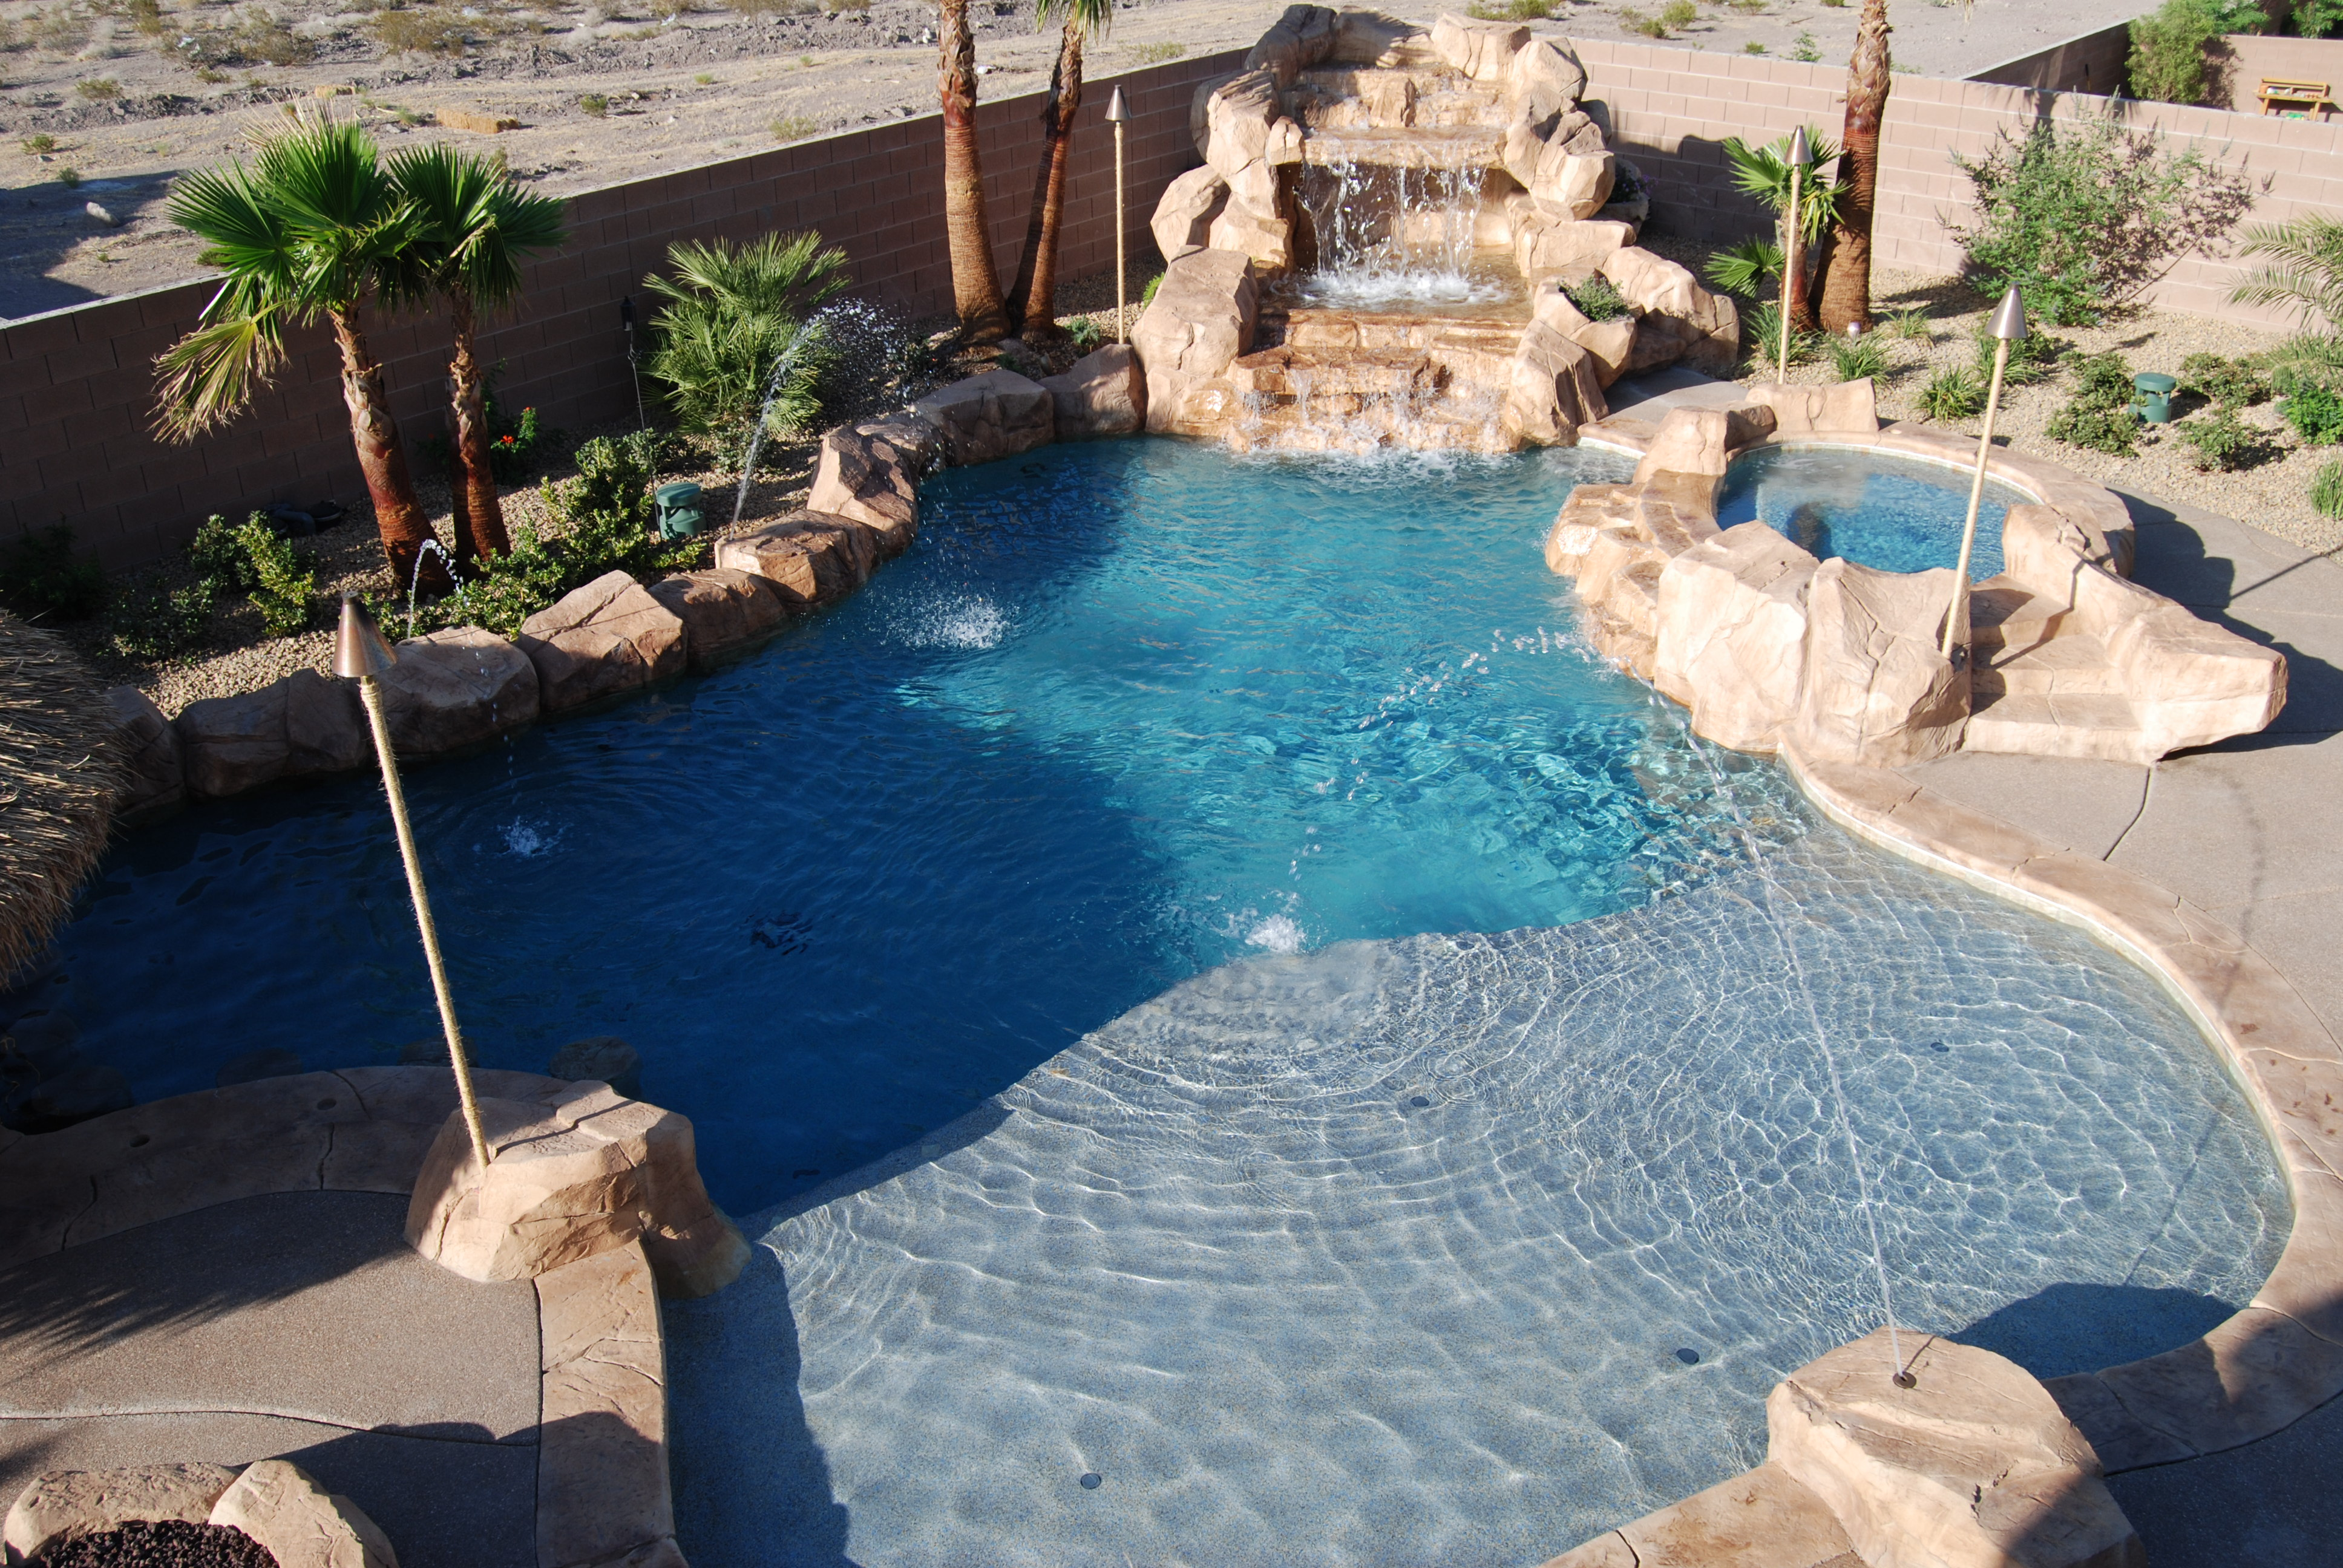 Pool Features - Las Vegas Pool Construction Company Pool Builder Landscaping - LagunaLas Vegas ...